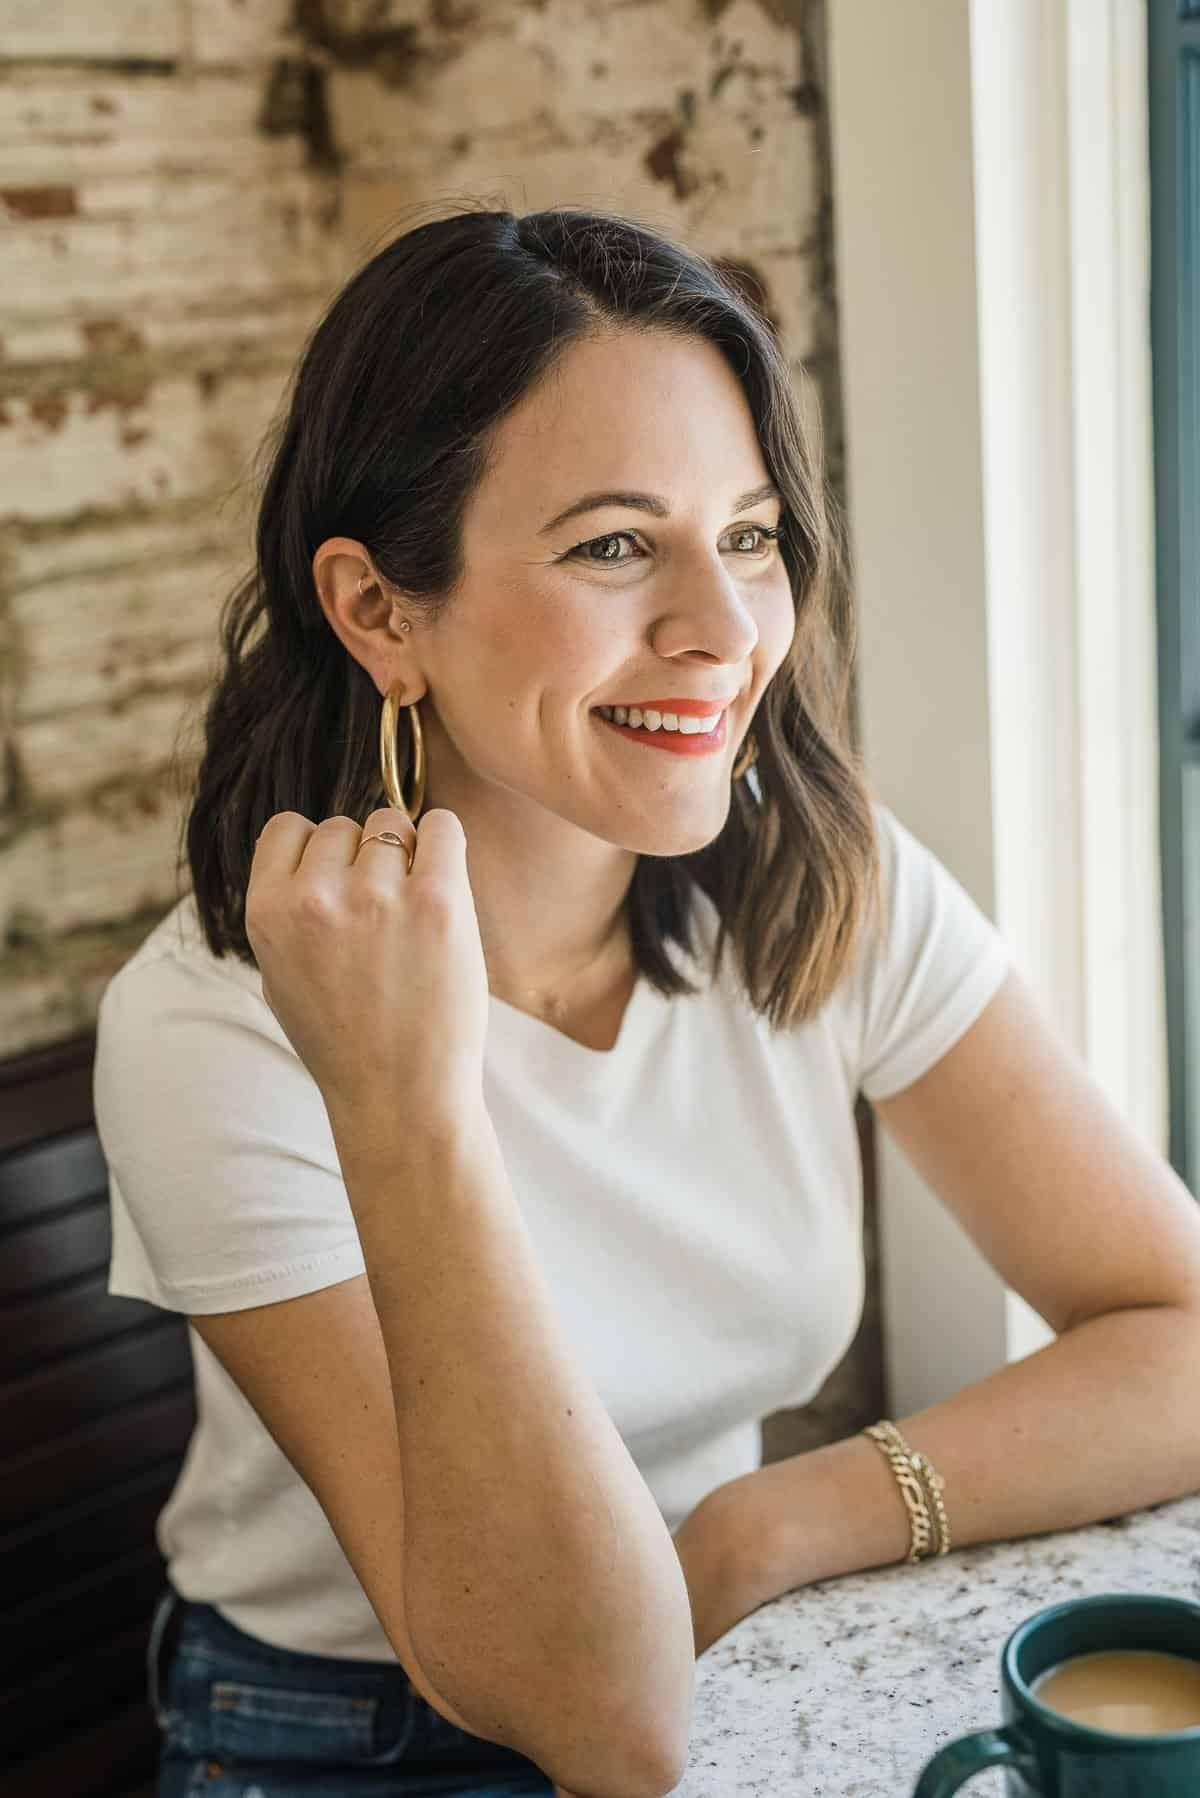 Jessica Camerata is sharing 5 branding questions to ask yourself.